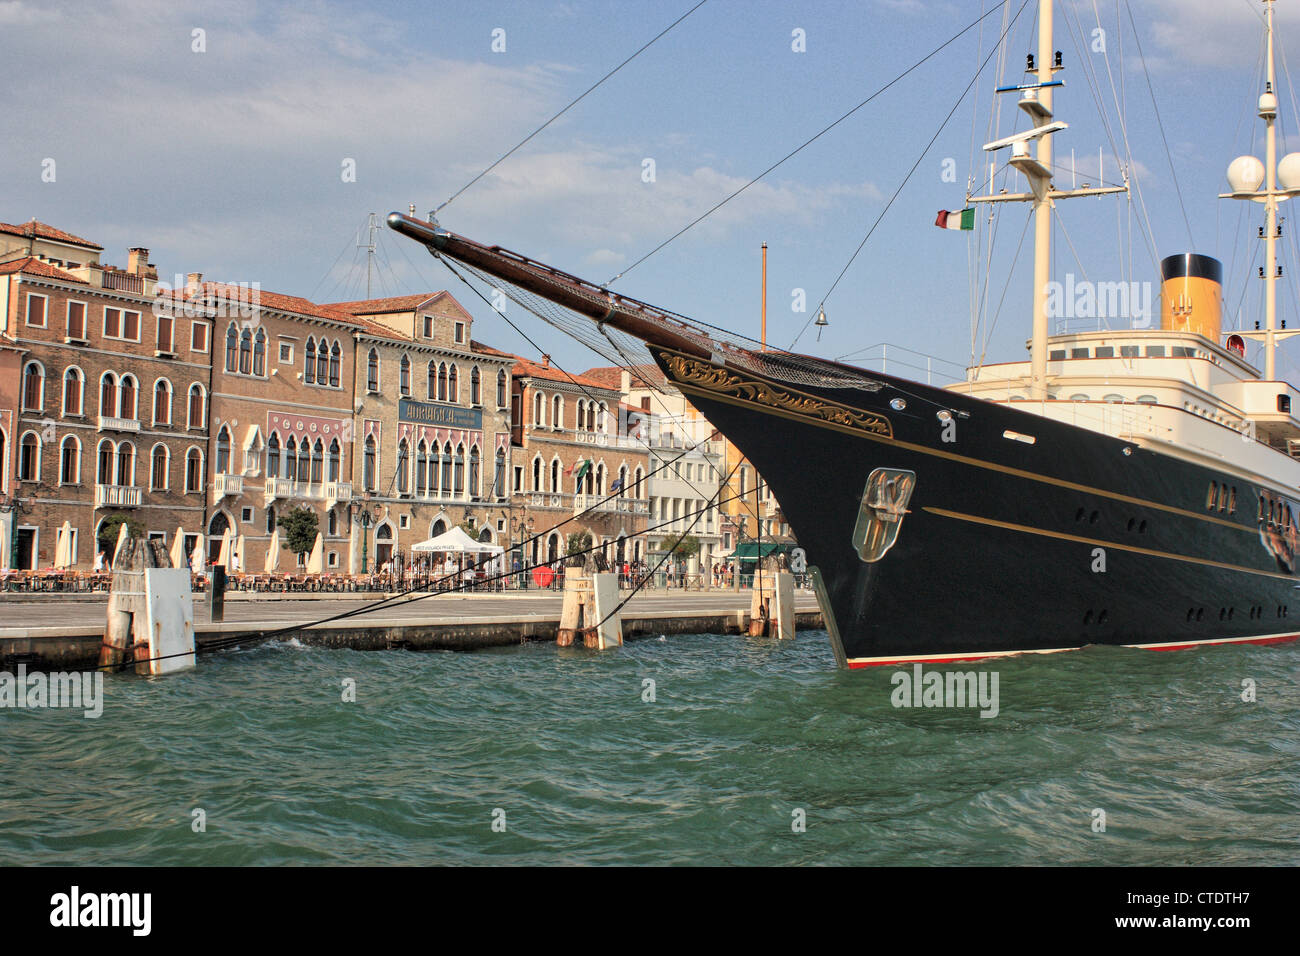 Classic motor yacht Nero, IMO 1008449, (built by Corsair Yachts) moored at Zattere waterfront - Stock Image